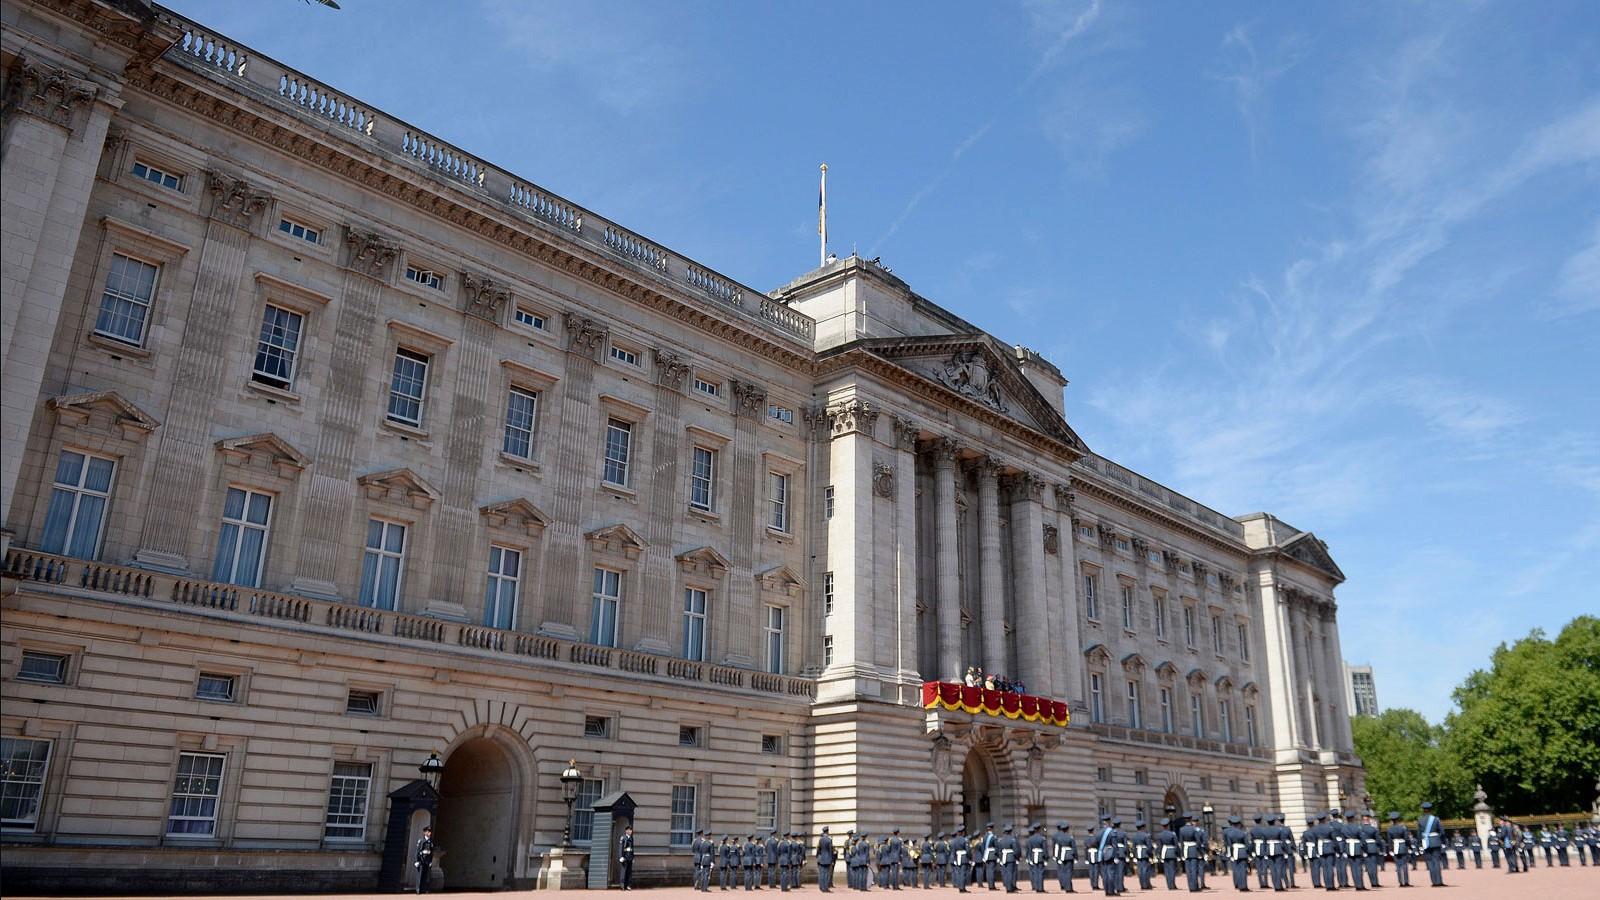 Sneak peek as queen opens buckingham palace to public - Is there a swimming pool in buckingham palace ...